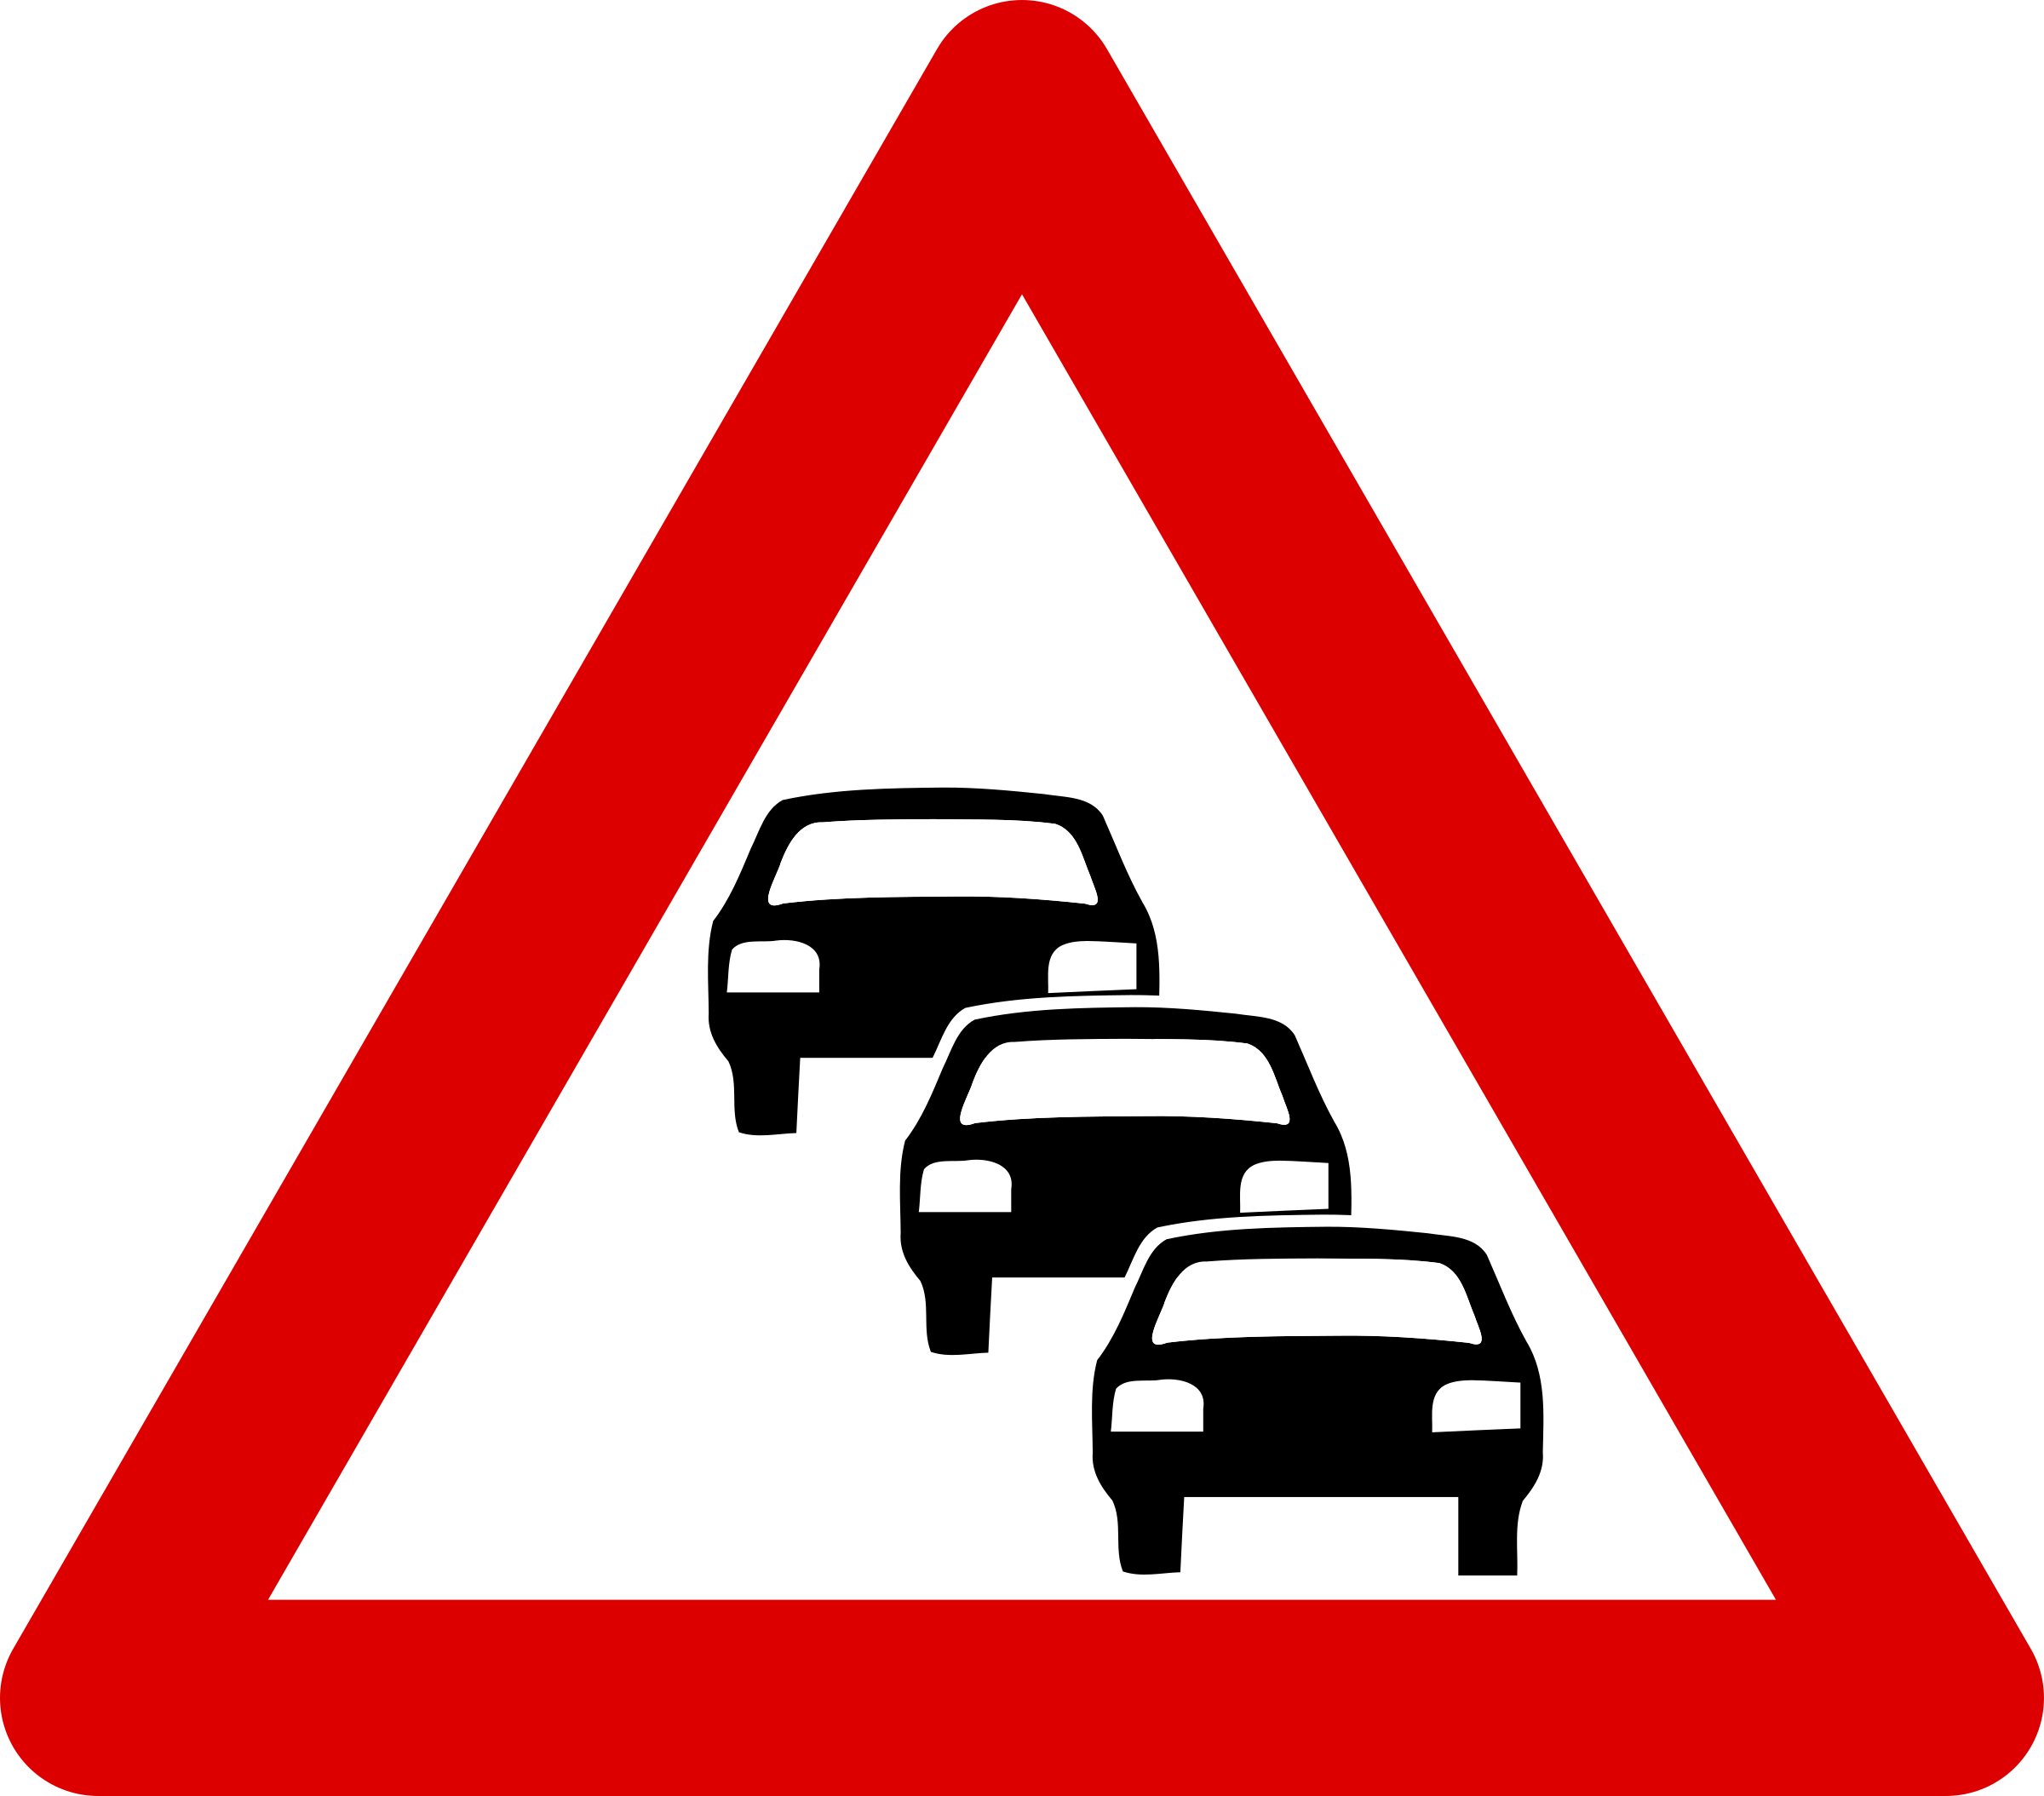 Against traffic clipart #17